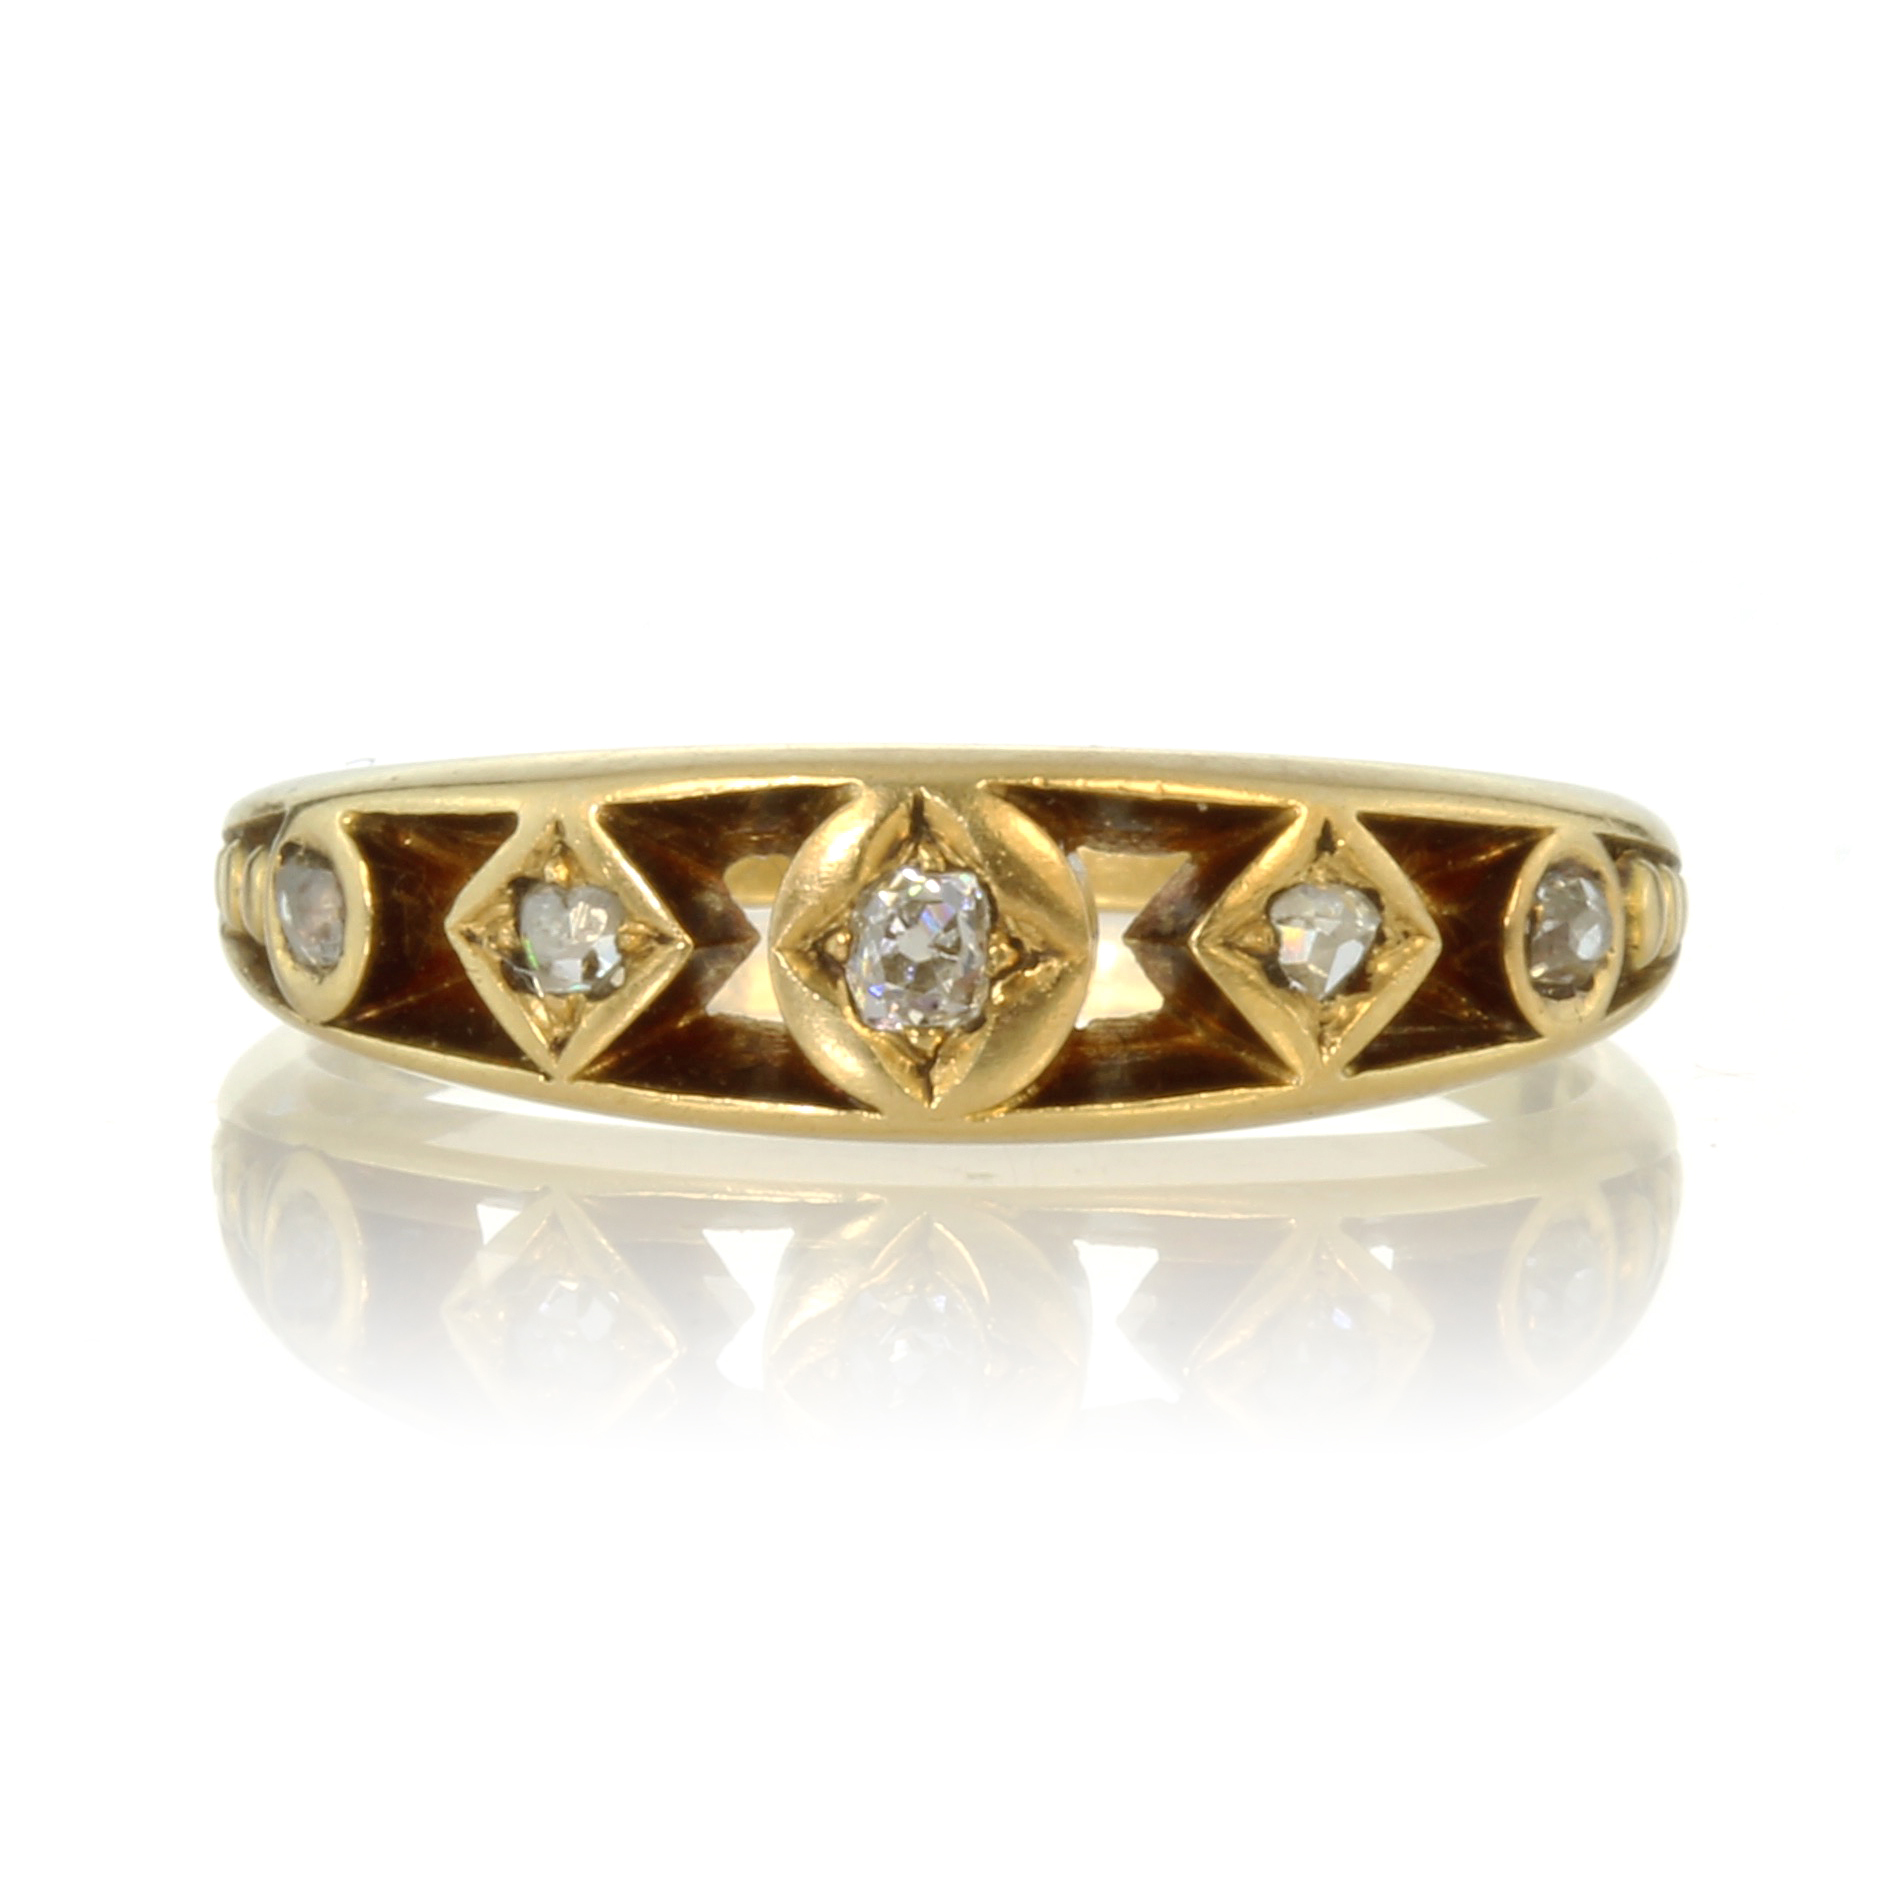 Los 53 - An antique Georgian five stone diamond ring in high carat yellow gold set with five graduated old